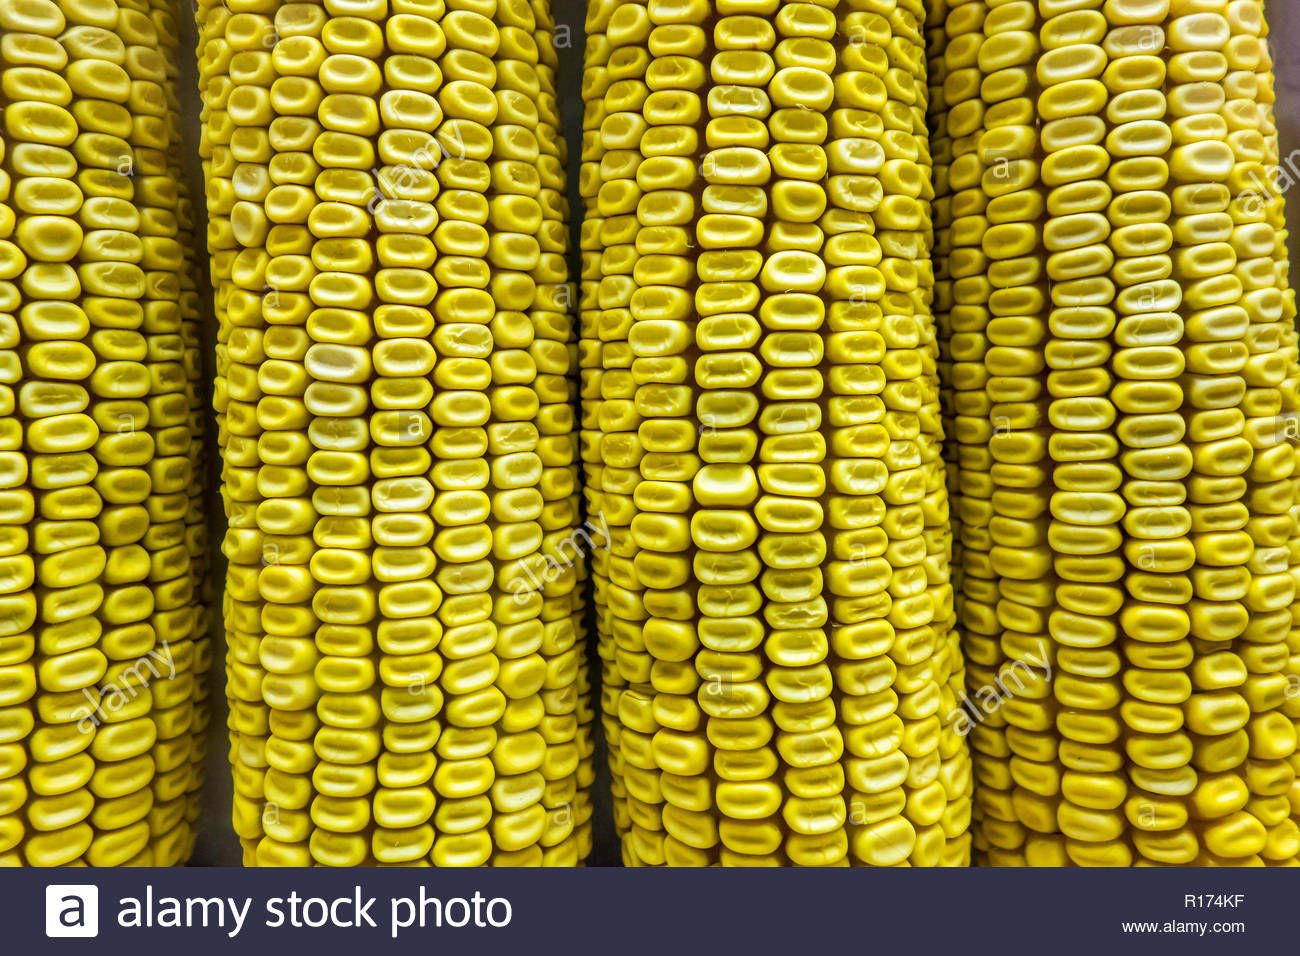 Ears of corn at the Royal Agricultural Winter Fair in Toronto Ontario Canada. - Stock Image